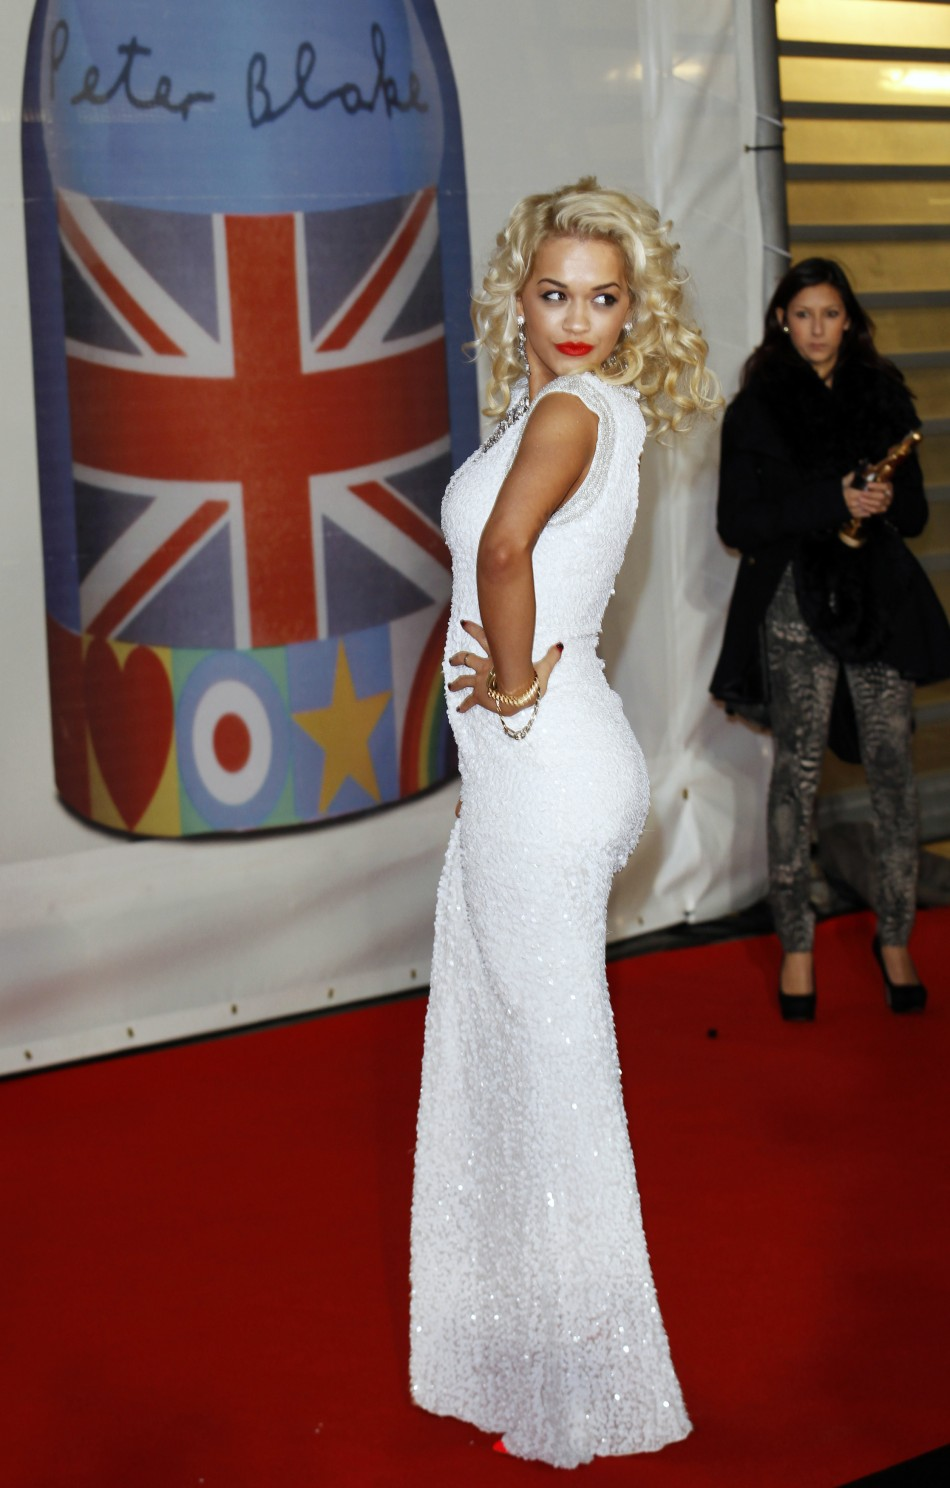 Rita Ora arrives for the BRIT Music Awards at the O2 Arena in London